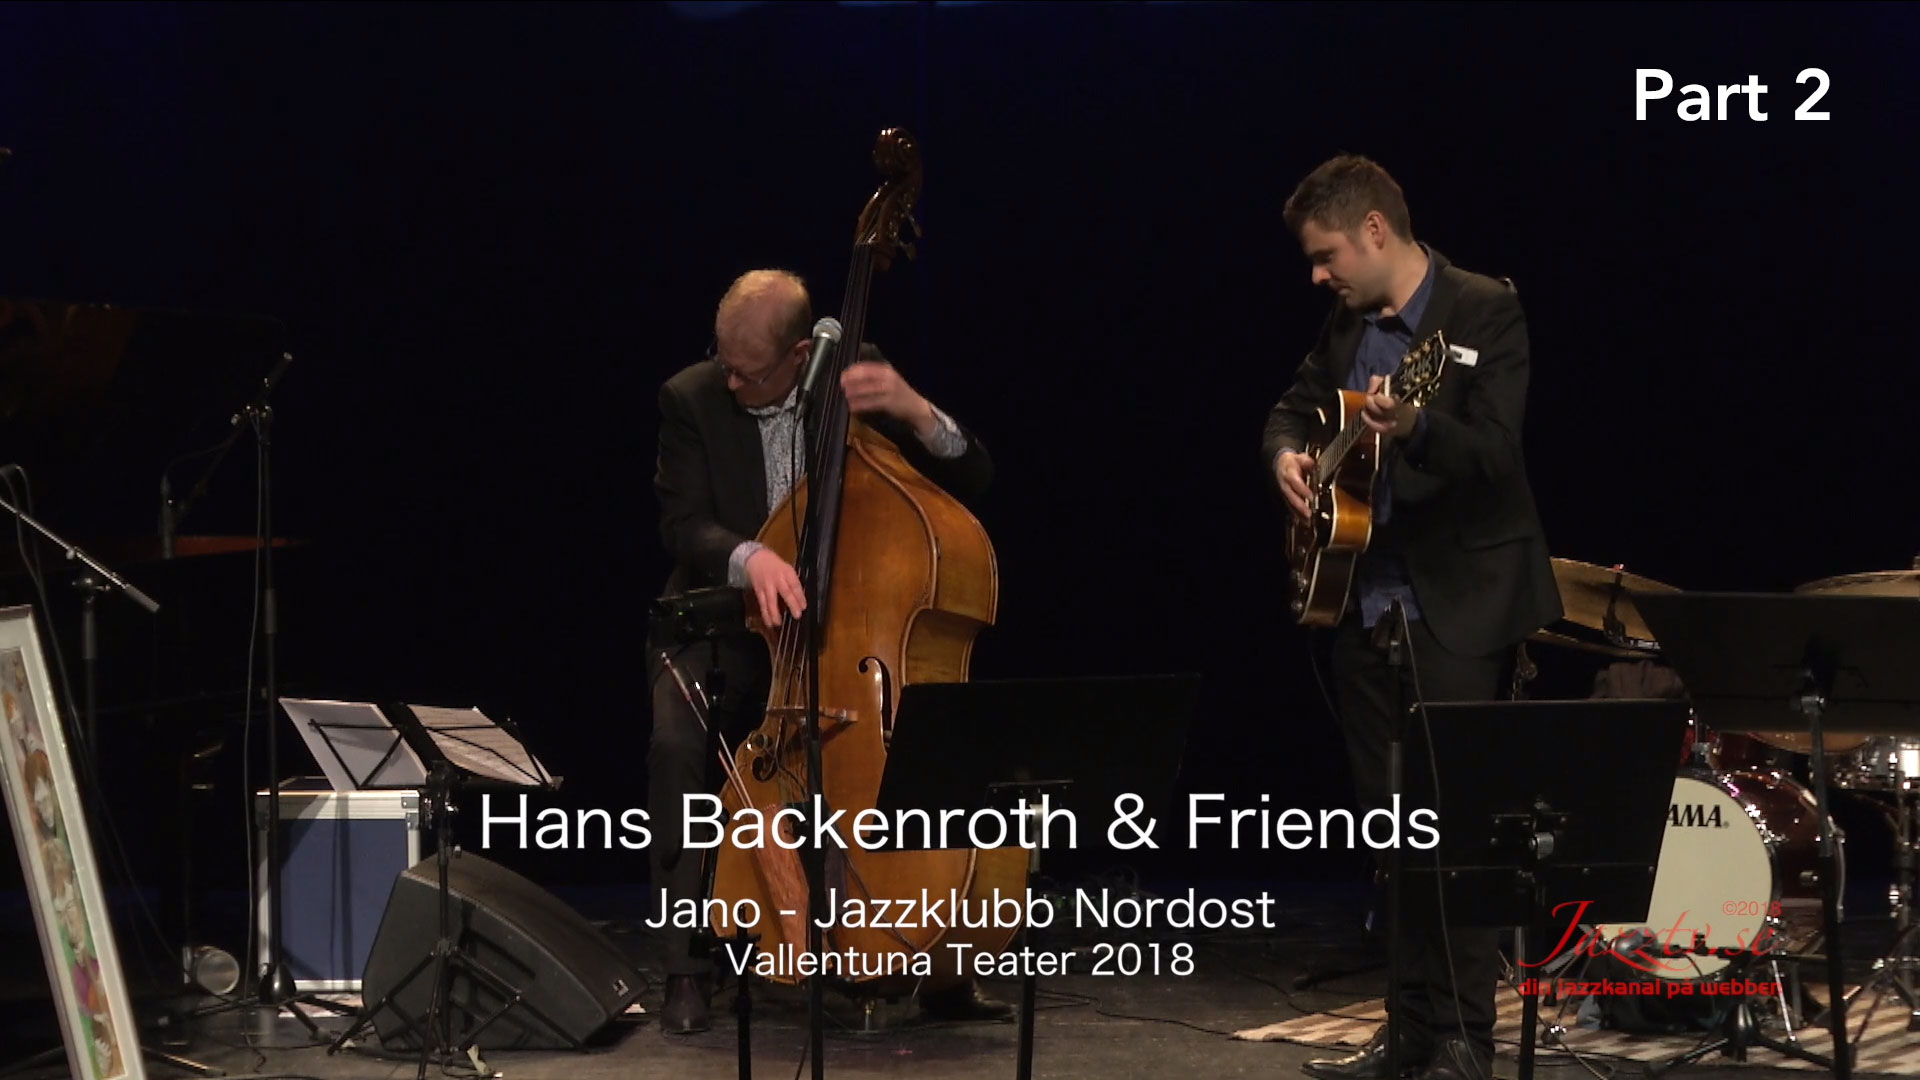 Hans Backenroth & Friends